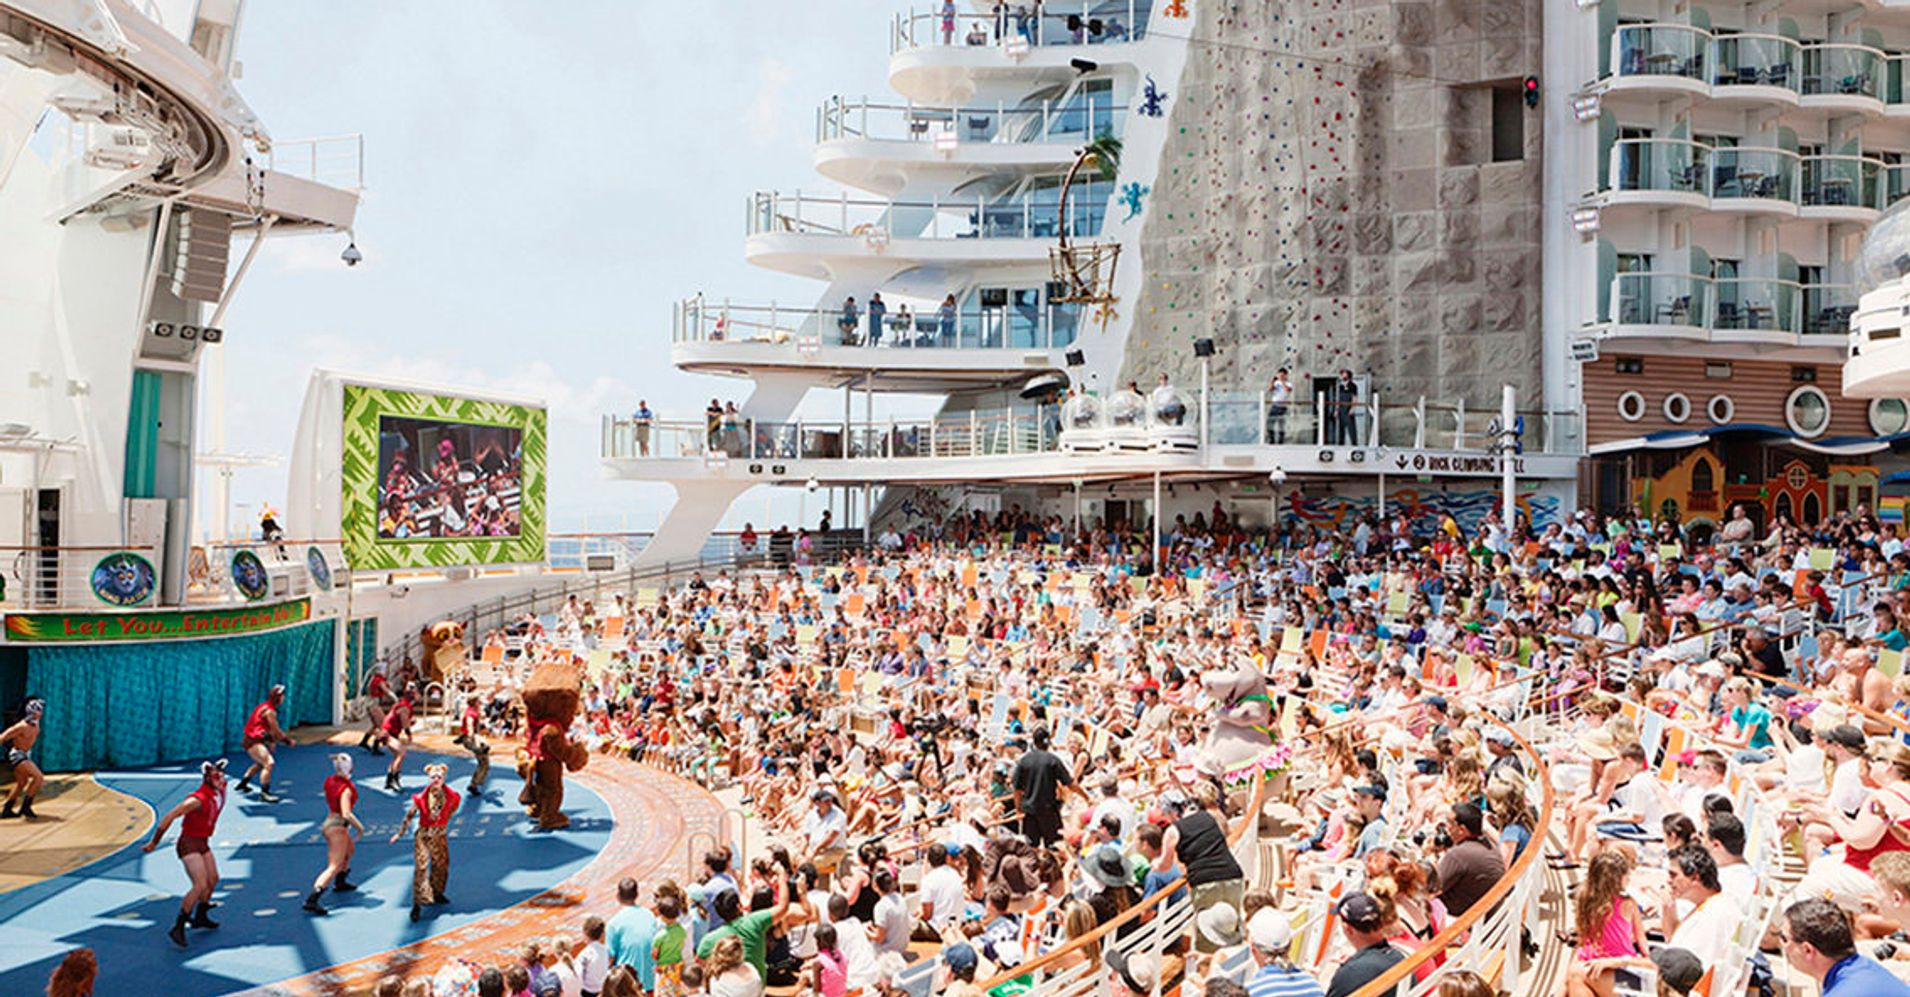 World S Largest Cruise Ship These Photos Take You Inside One Of The World S Largest